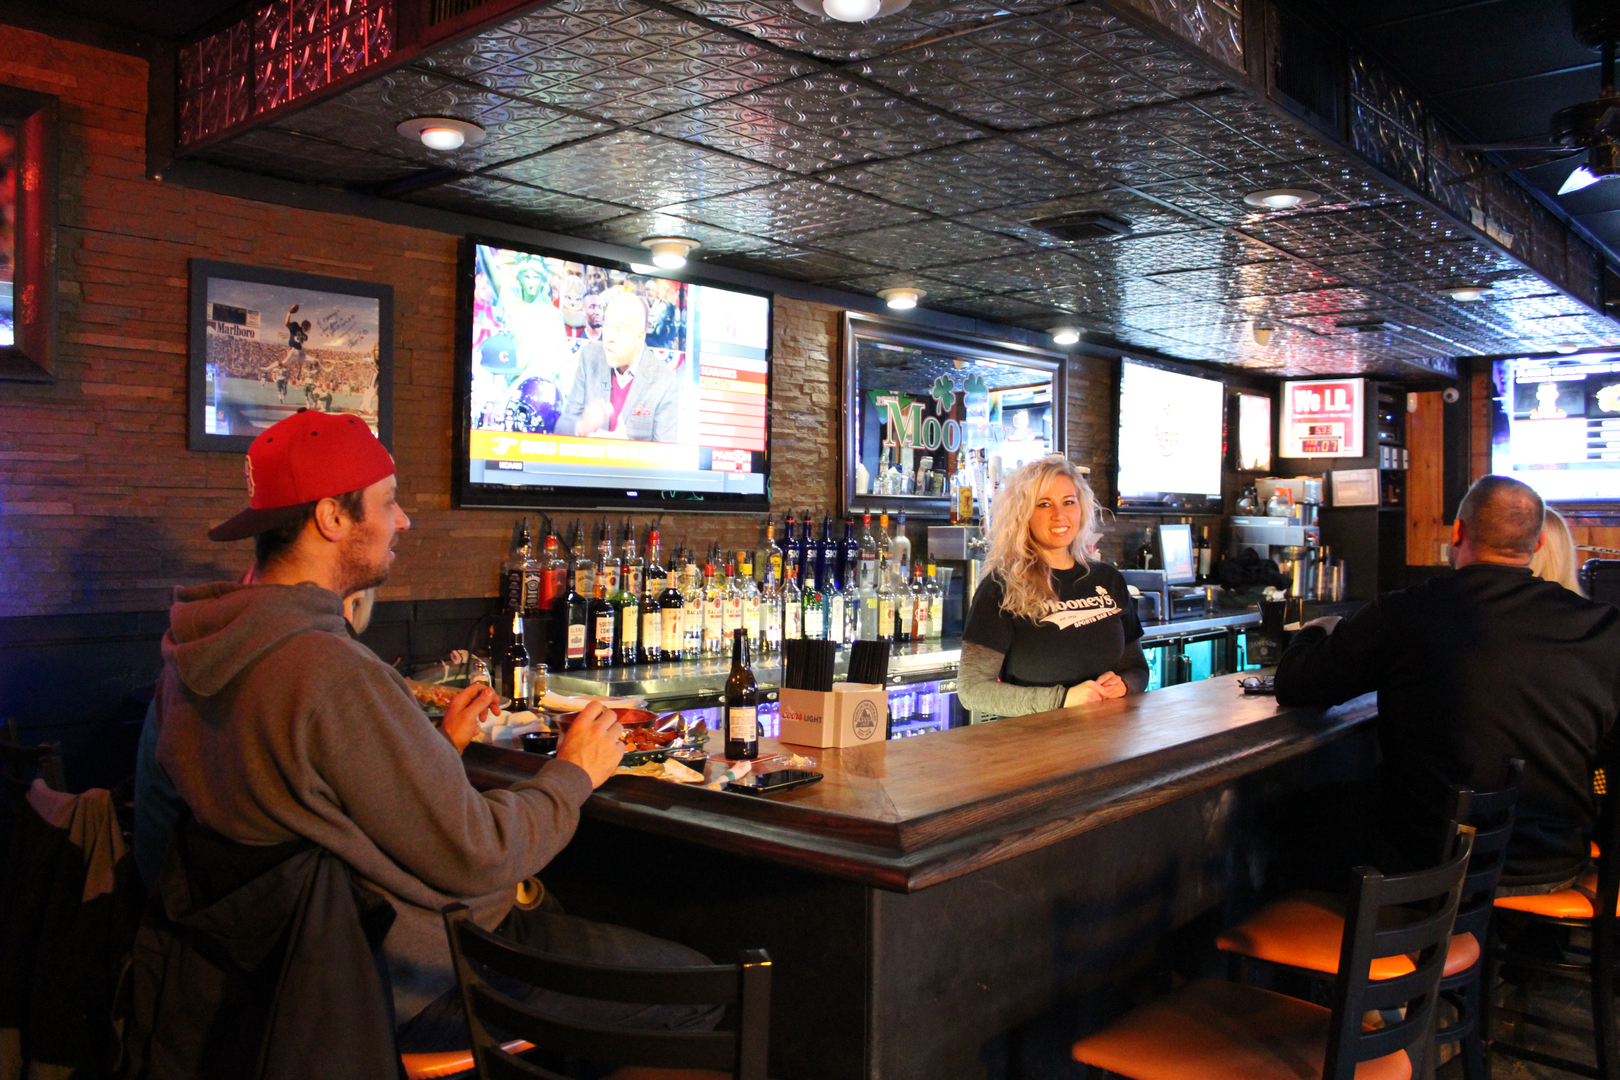 Depew Bar with customer sitting and drinking